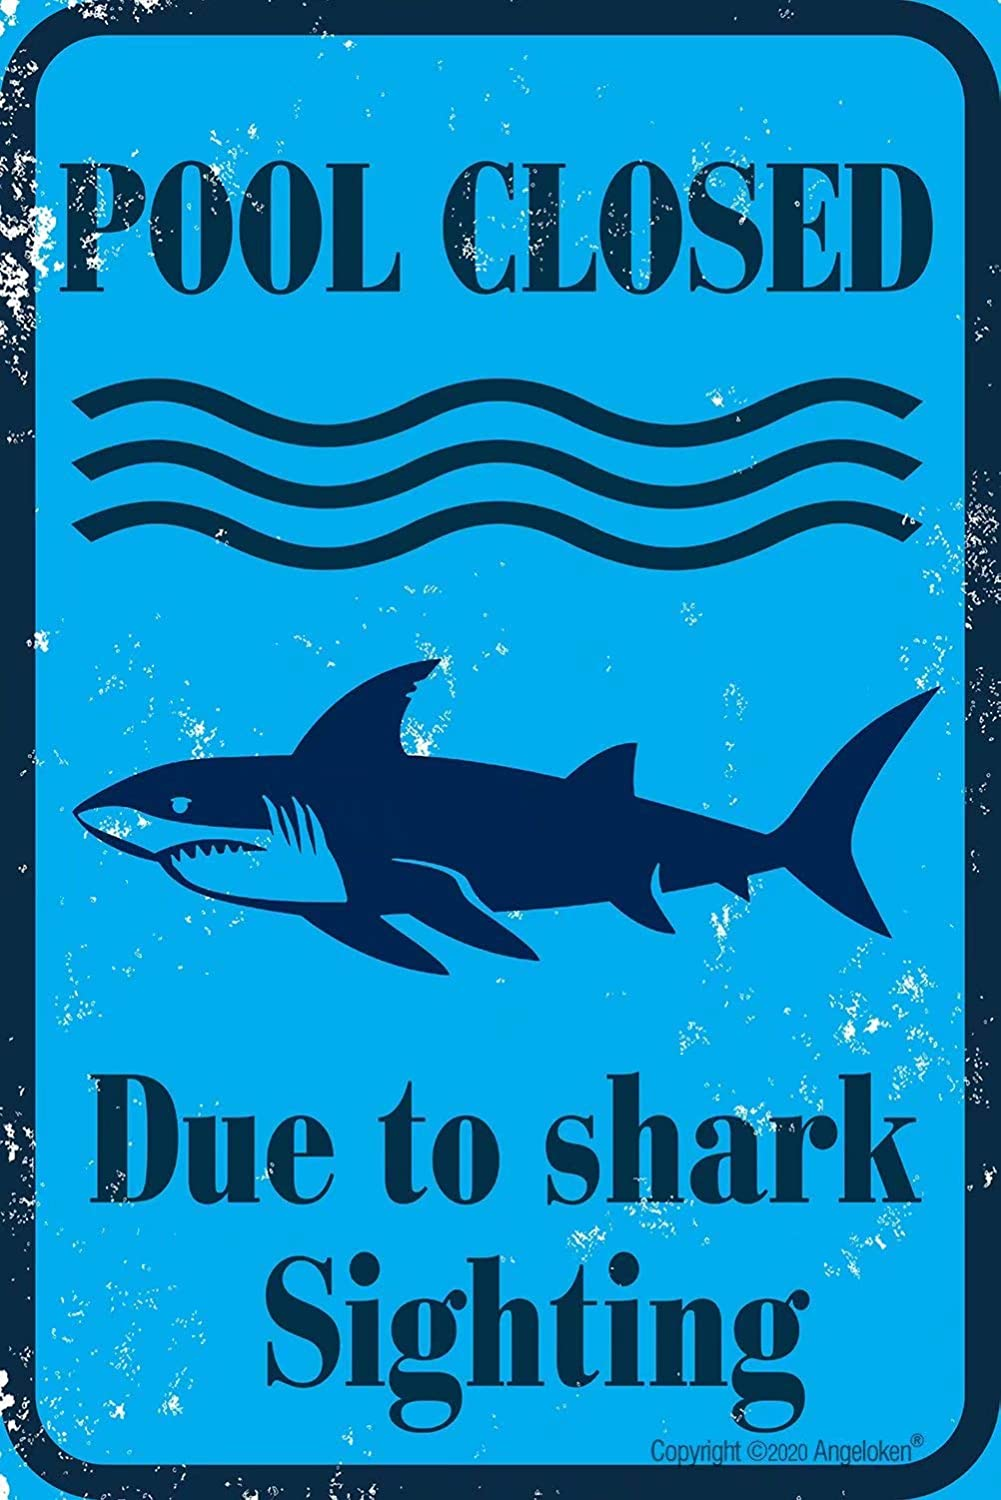 Angeloken Retro Metal Sign Vintage TIN Sign Pool Closed Due to Shark Sighting Sign for Plaque Poster Cafe Wall Art Sign Gift 8 X 12 INCH